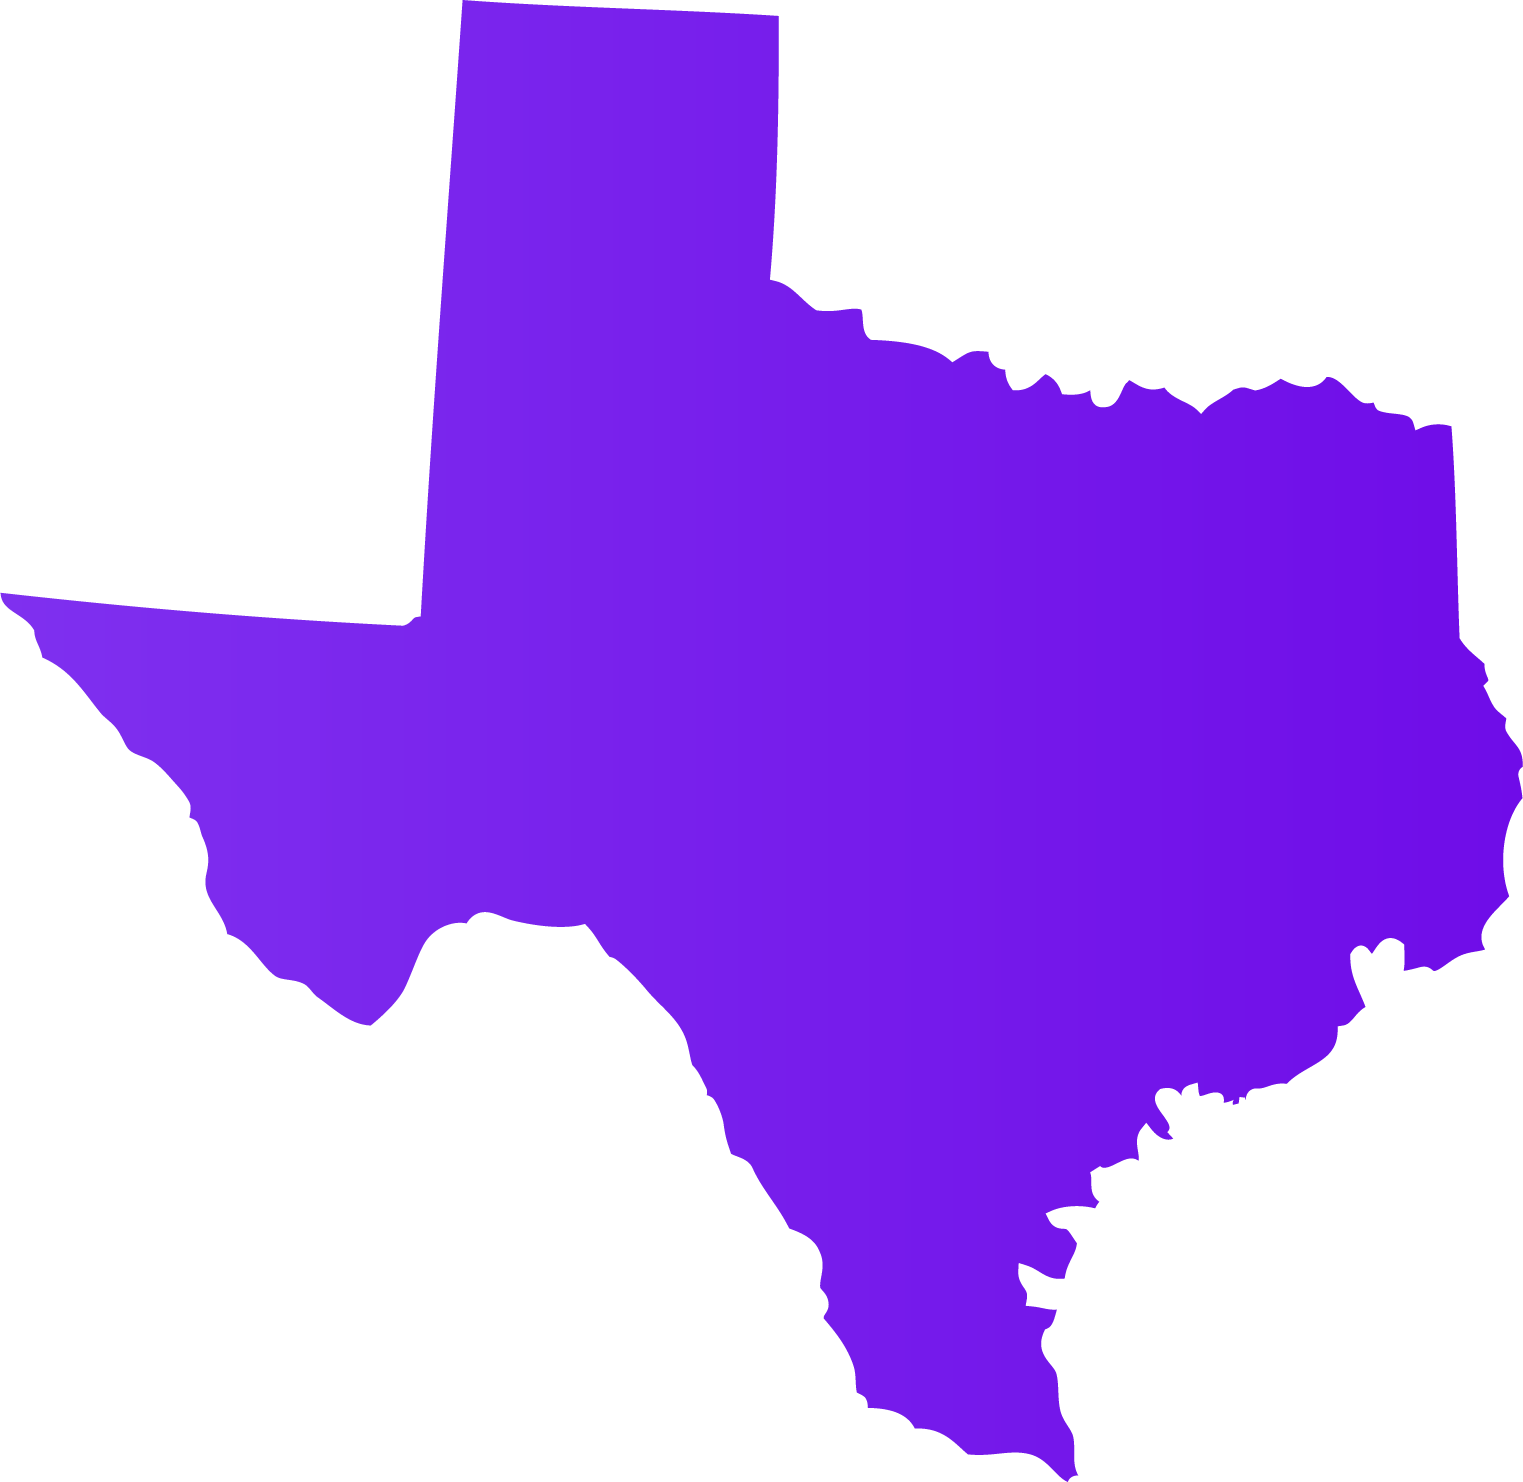 Texas Symbols Clipart At Getdrawings Free For Personal Use